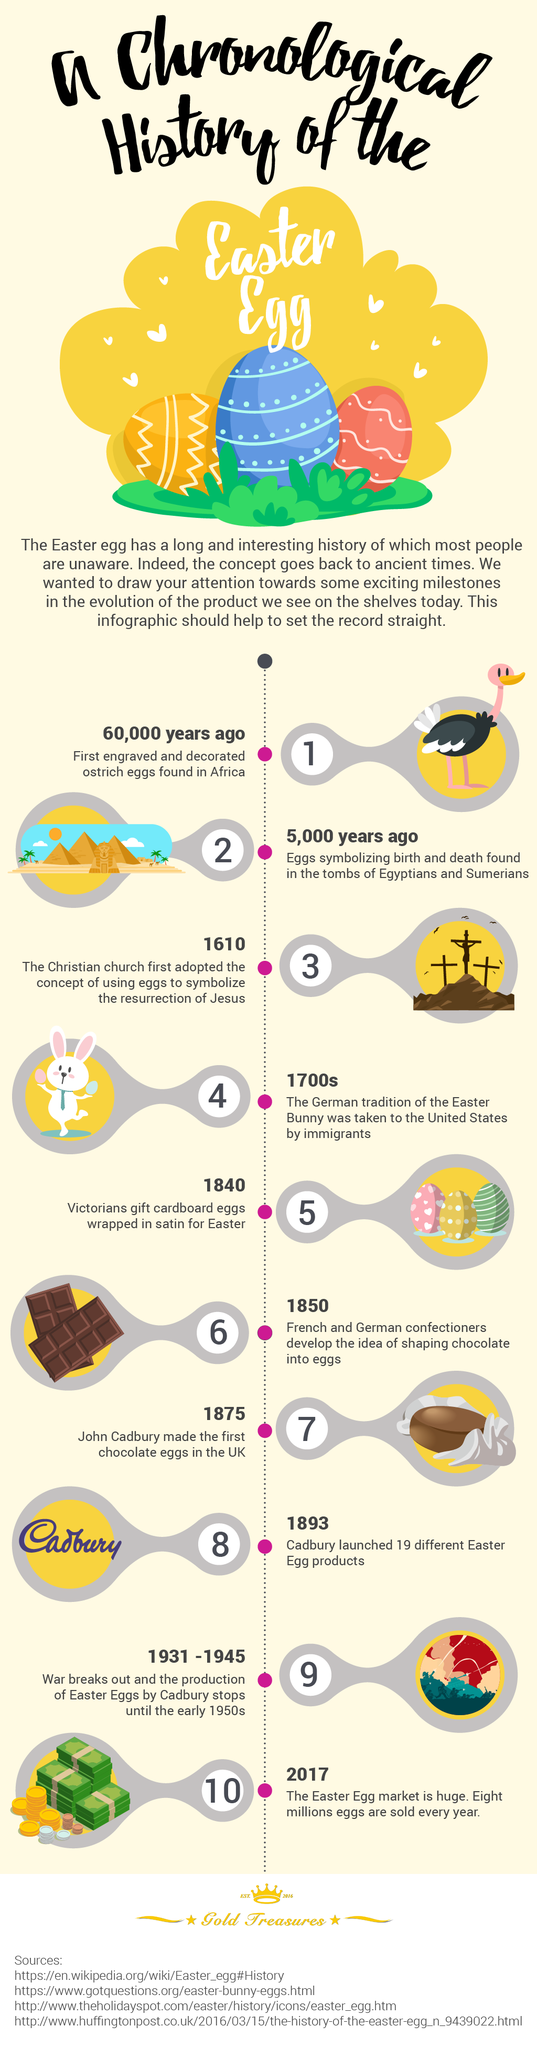 useful infographic showing chronological history of the Easter Egg